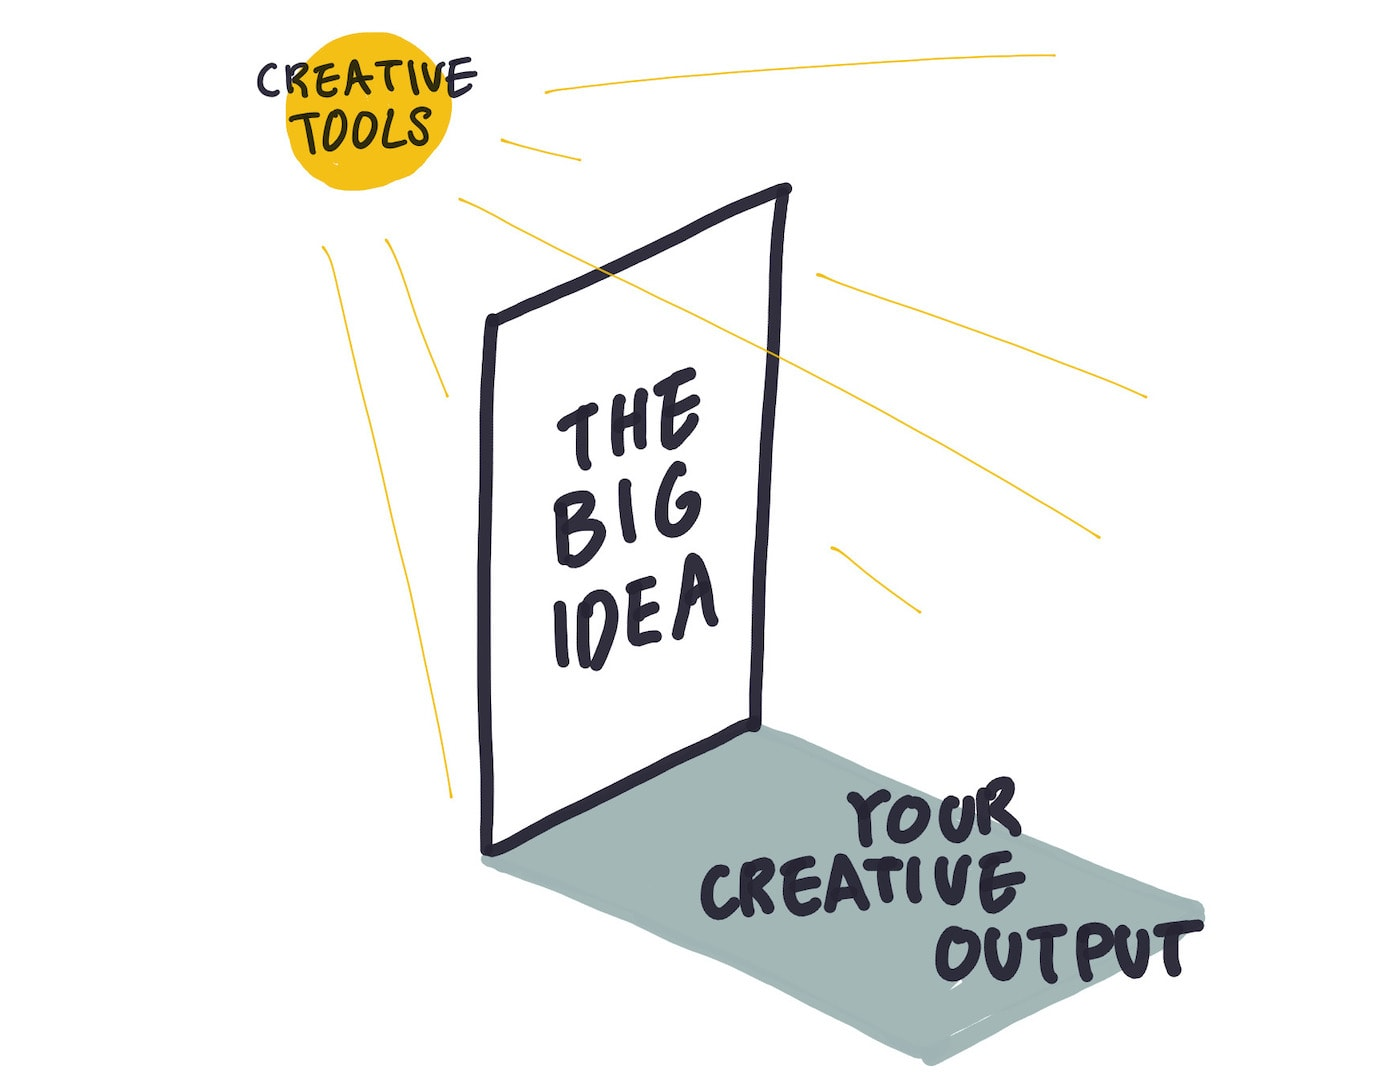 The creative tools you use help you cast the shadow of your big ideas on the world; the sharper the tools, the clearer your creative output.